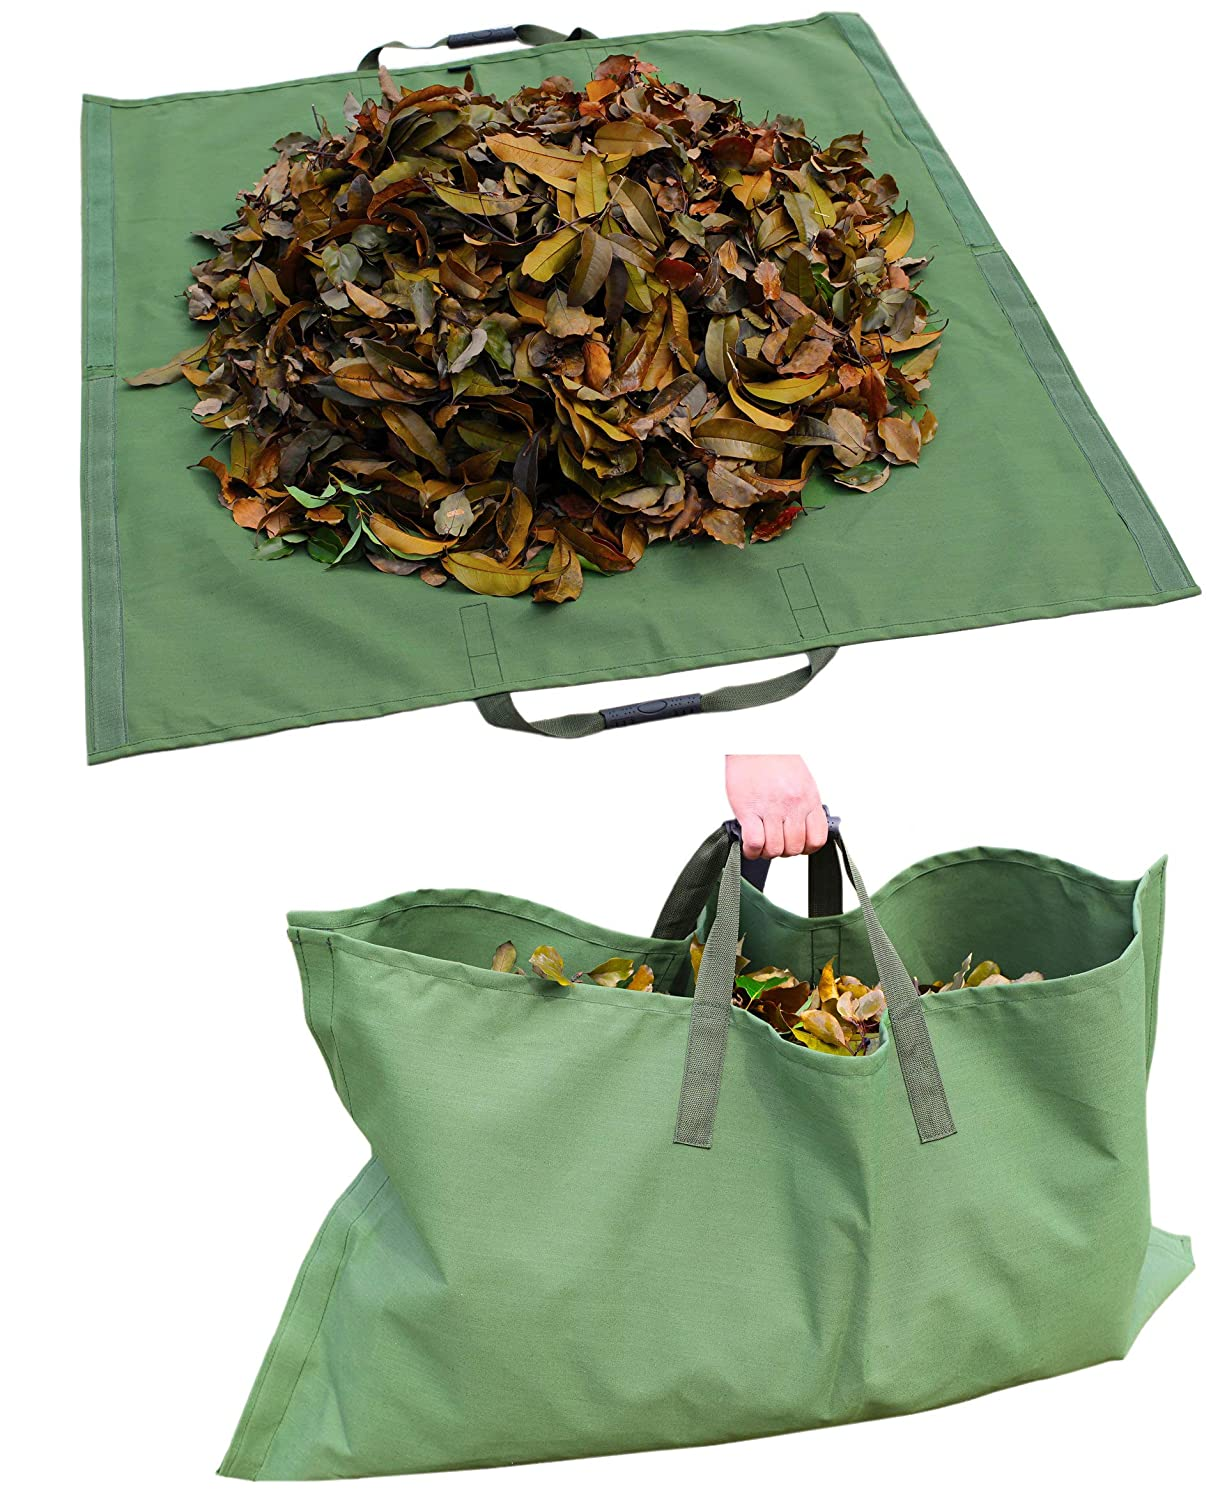 Amatory Leaf Lawn Garden Yard Waste Tarp Clean Up Gardening Trash Bag Clean-up Heavy Duty Military Canvas Fabric Reusable (Tarp-Green)